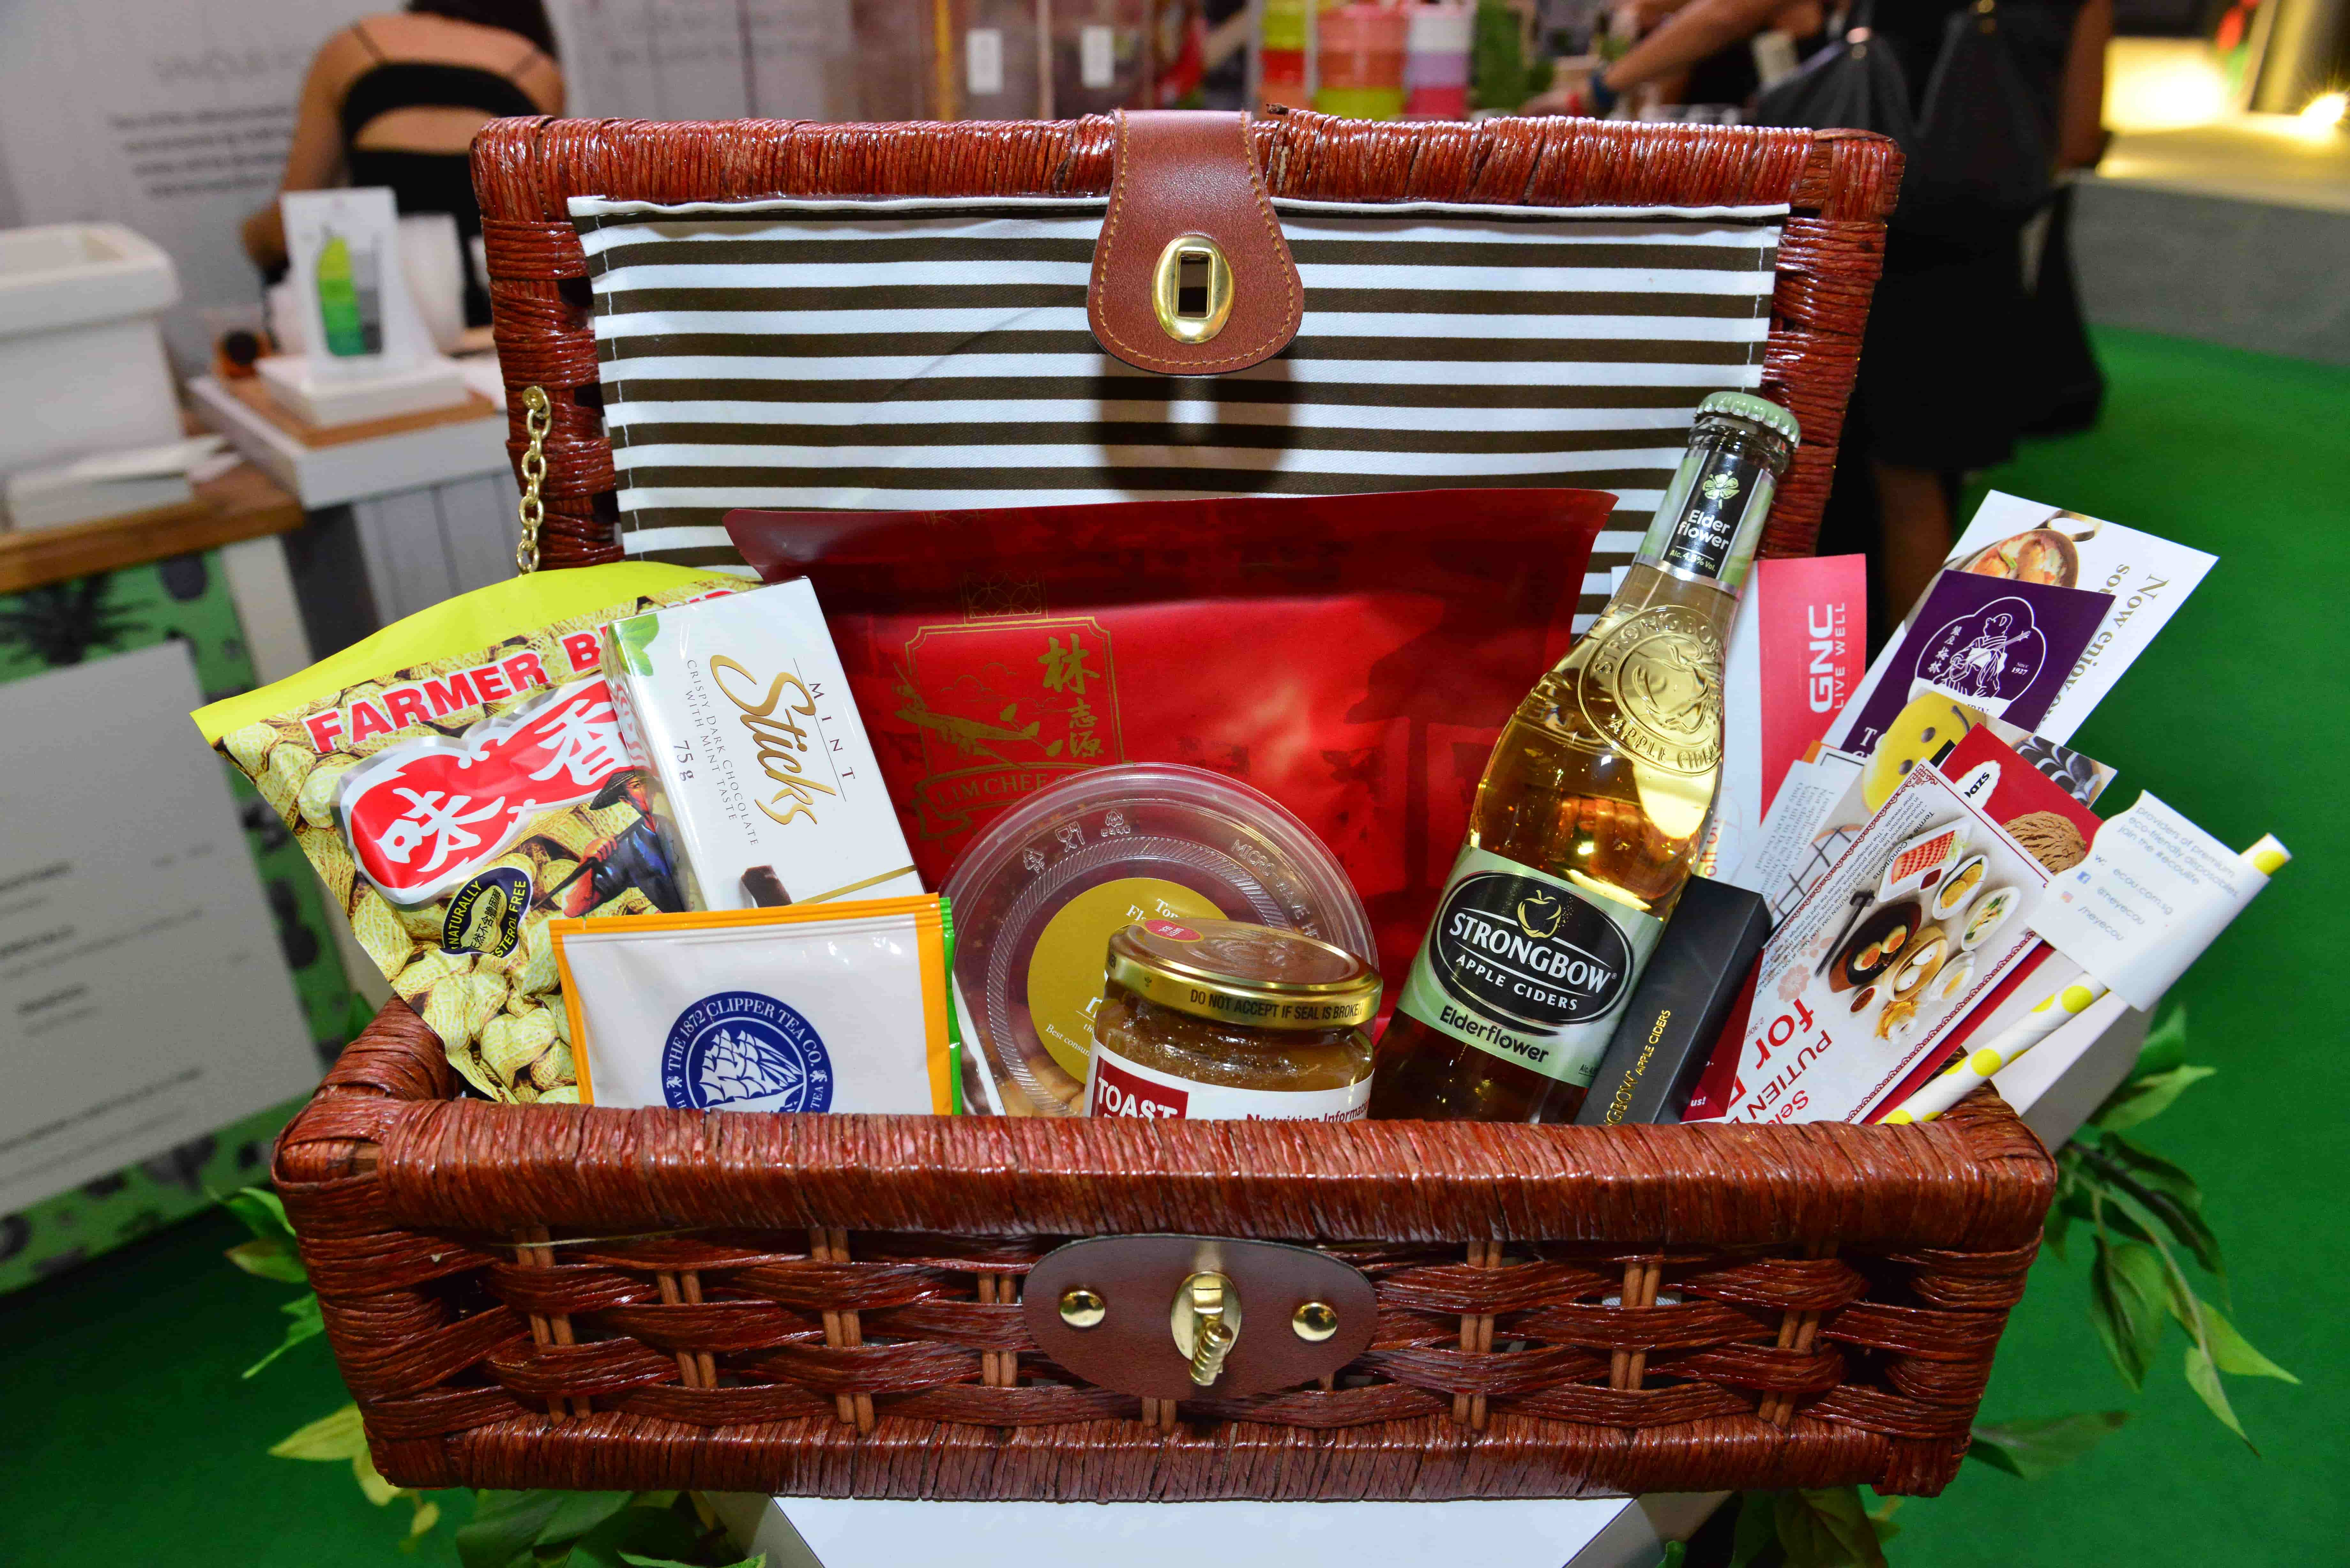 Indoor Picknick enjoy an indoor picnic at ion orchard culinary creations 2016 361